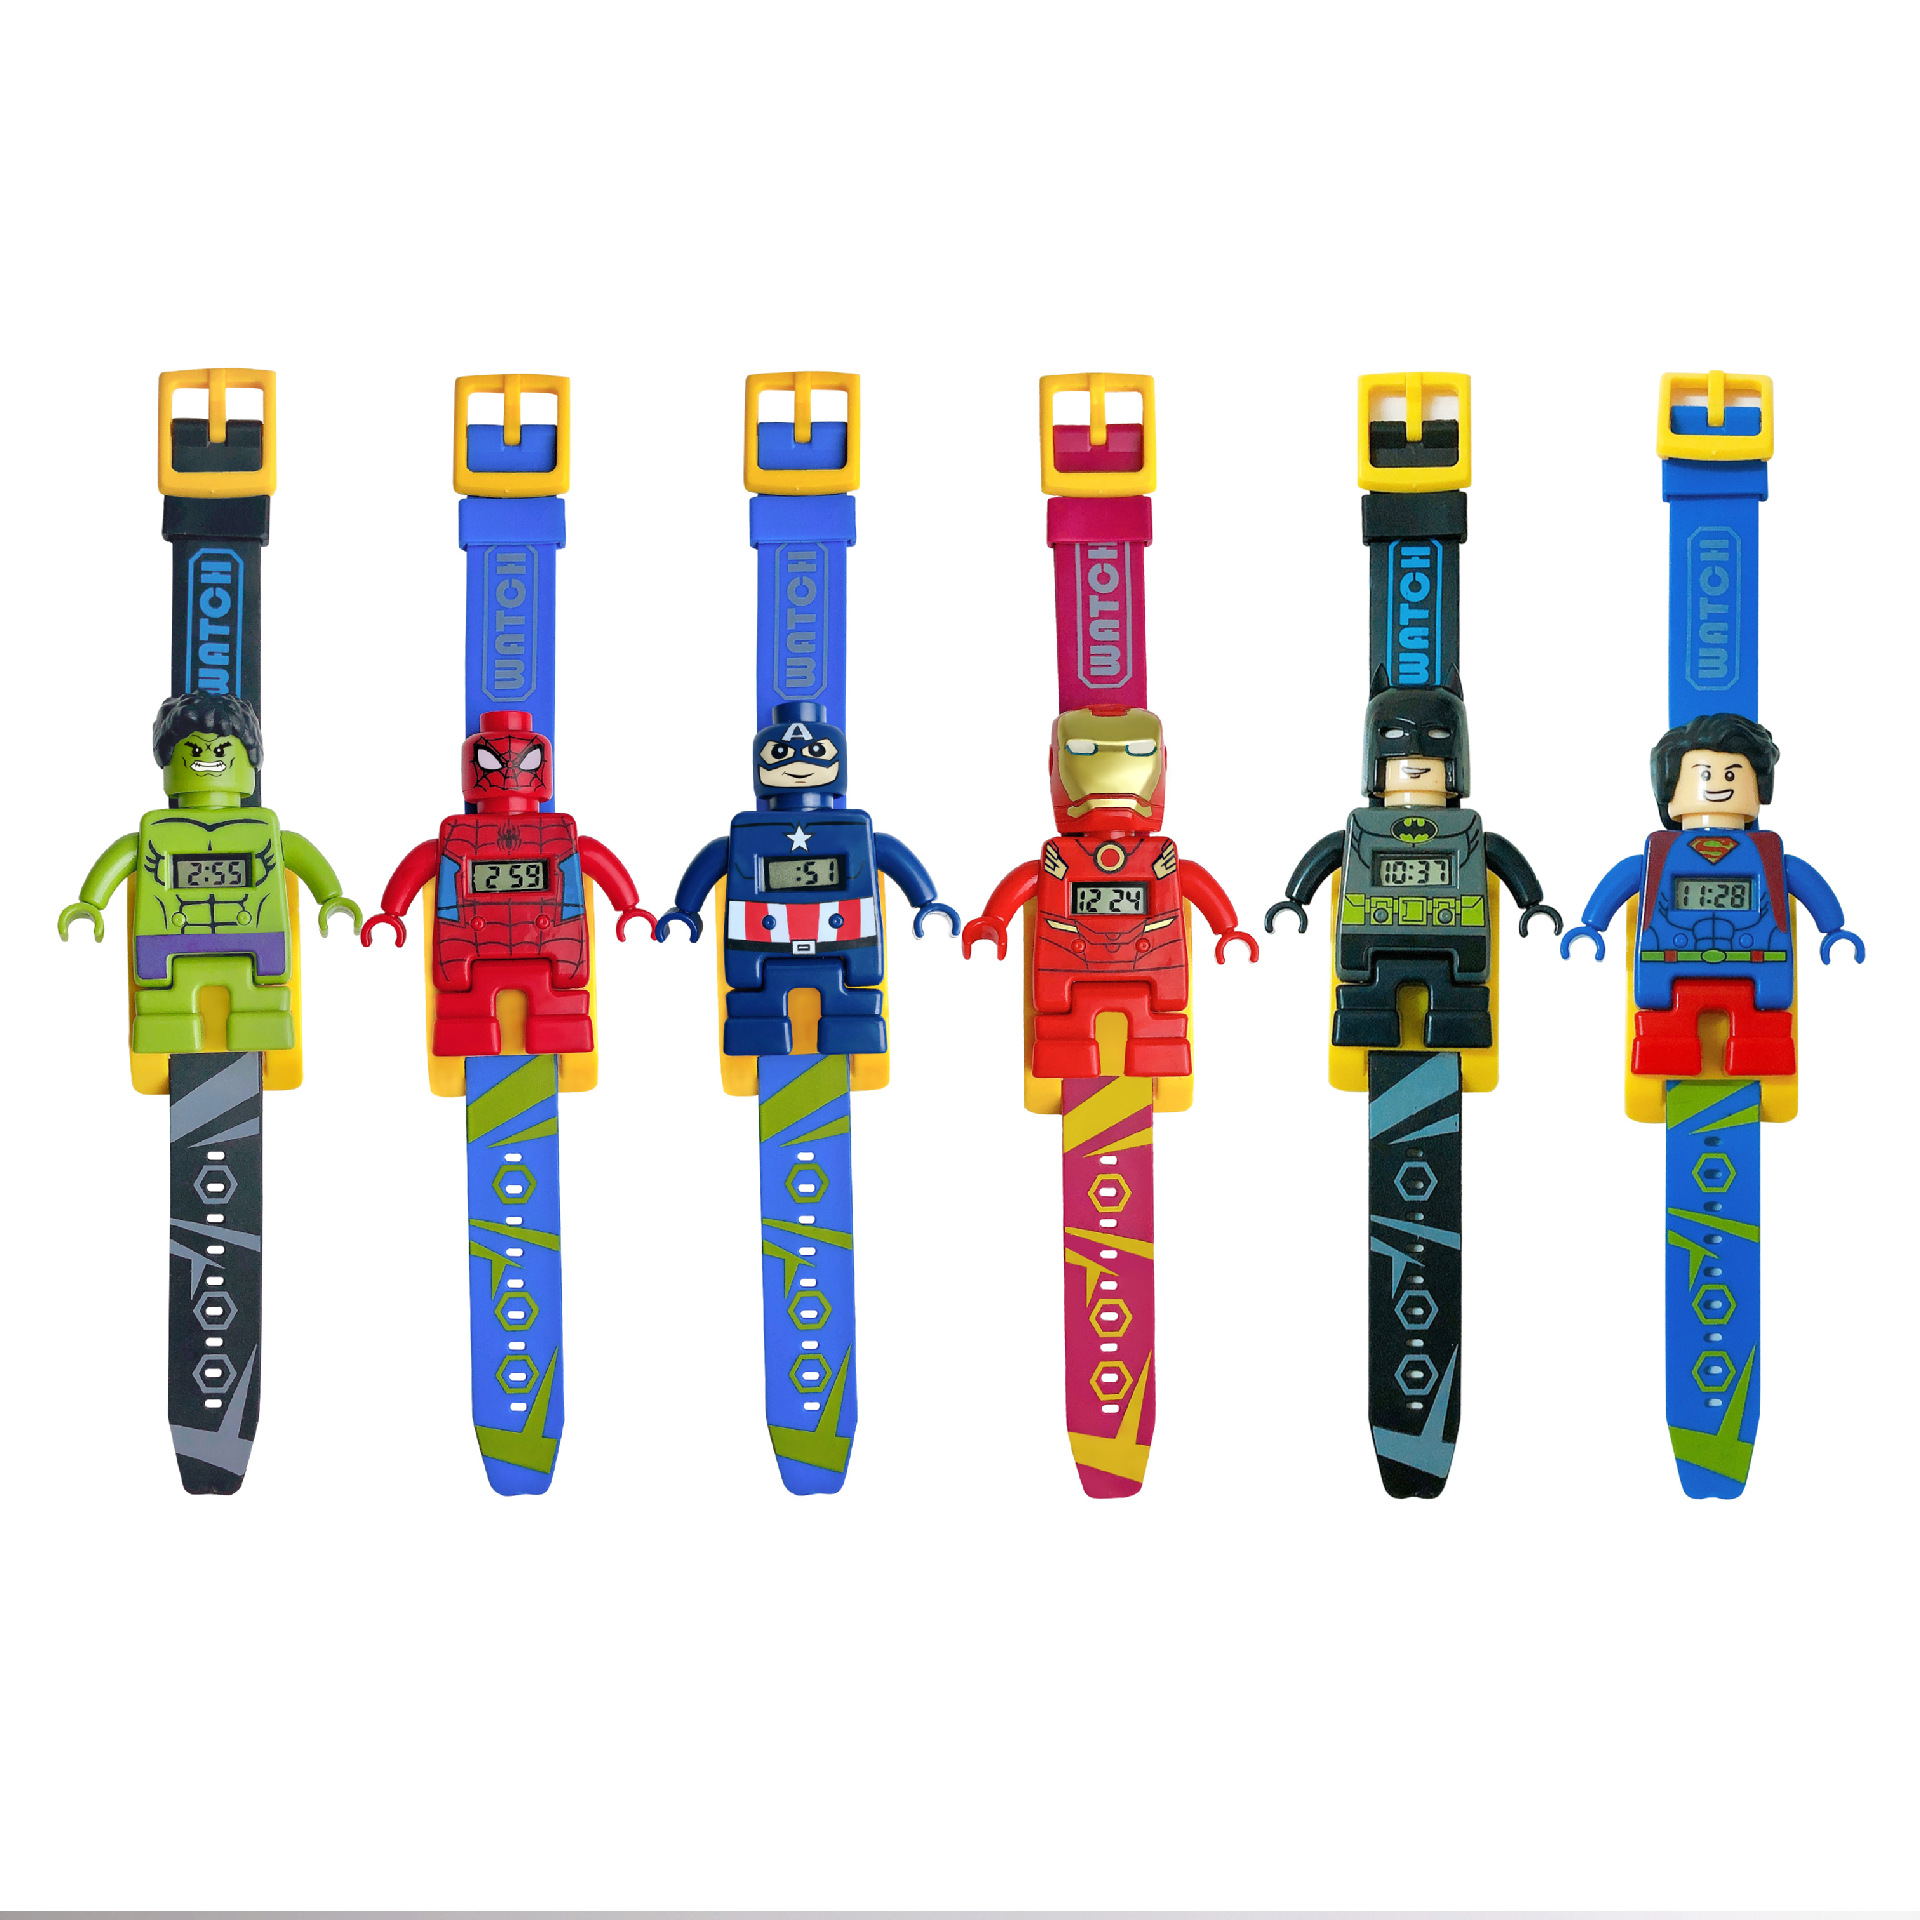 Spiderman Hulk Batman Captain Project Wristwatch Toy Electronic Watch Children Sports Cartoon Watches Kids Xmas Gifts #2685